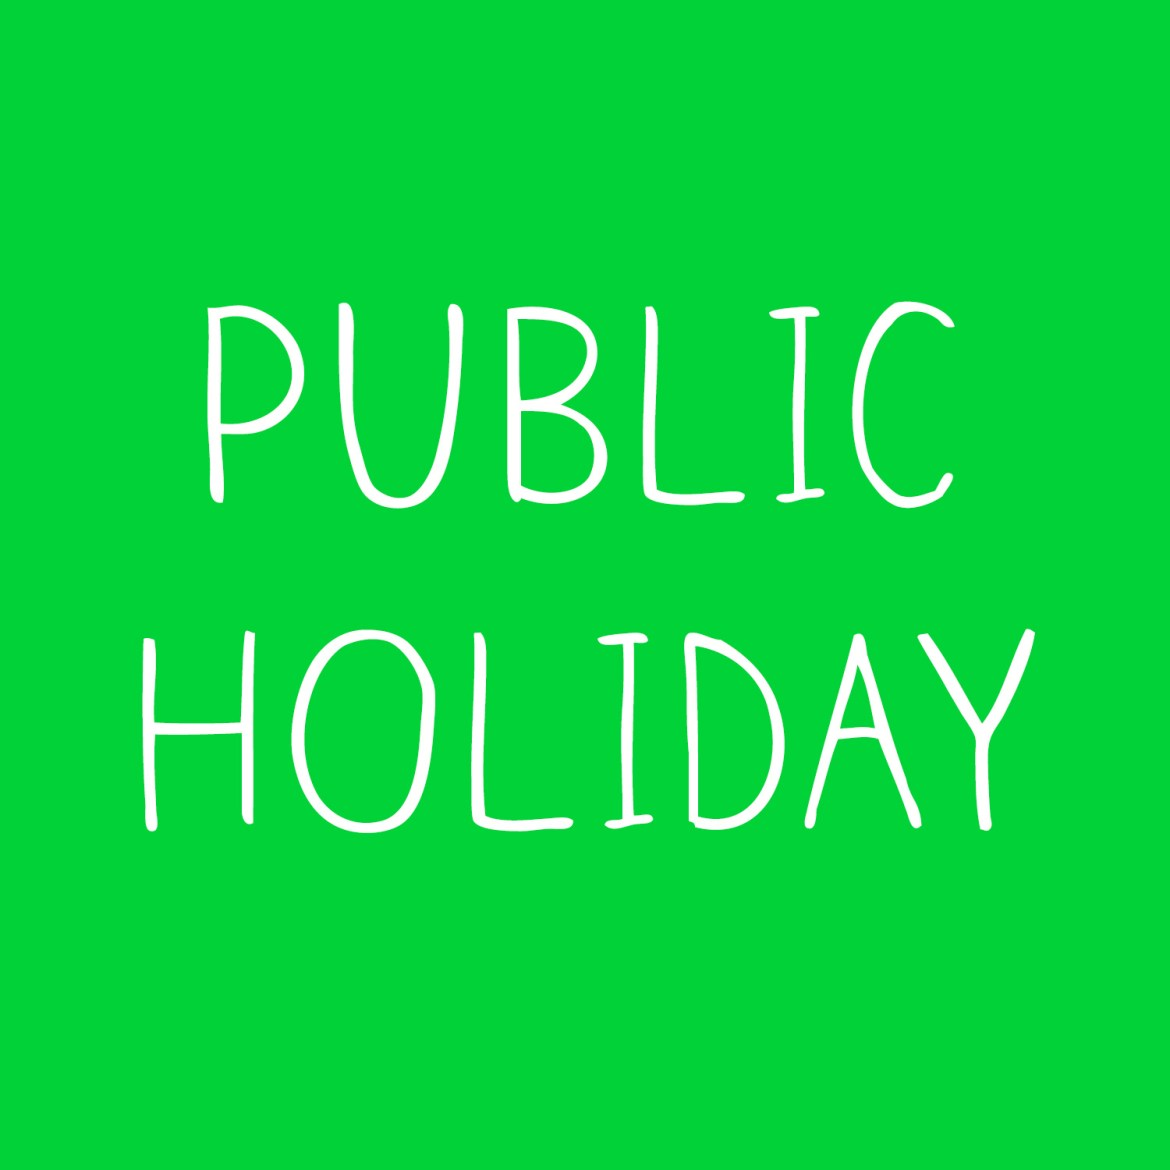 breaking news fg announces 2 day public holiday to celebrate good friday and easter monday - Federal Government declares Friday and Monday, as public holiday